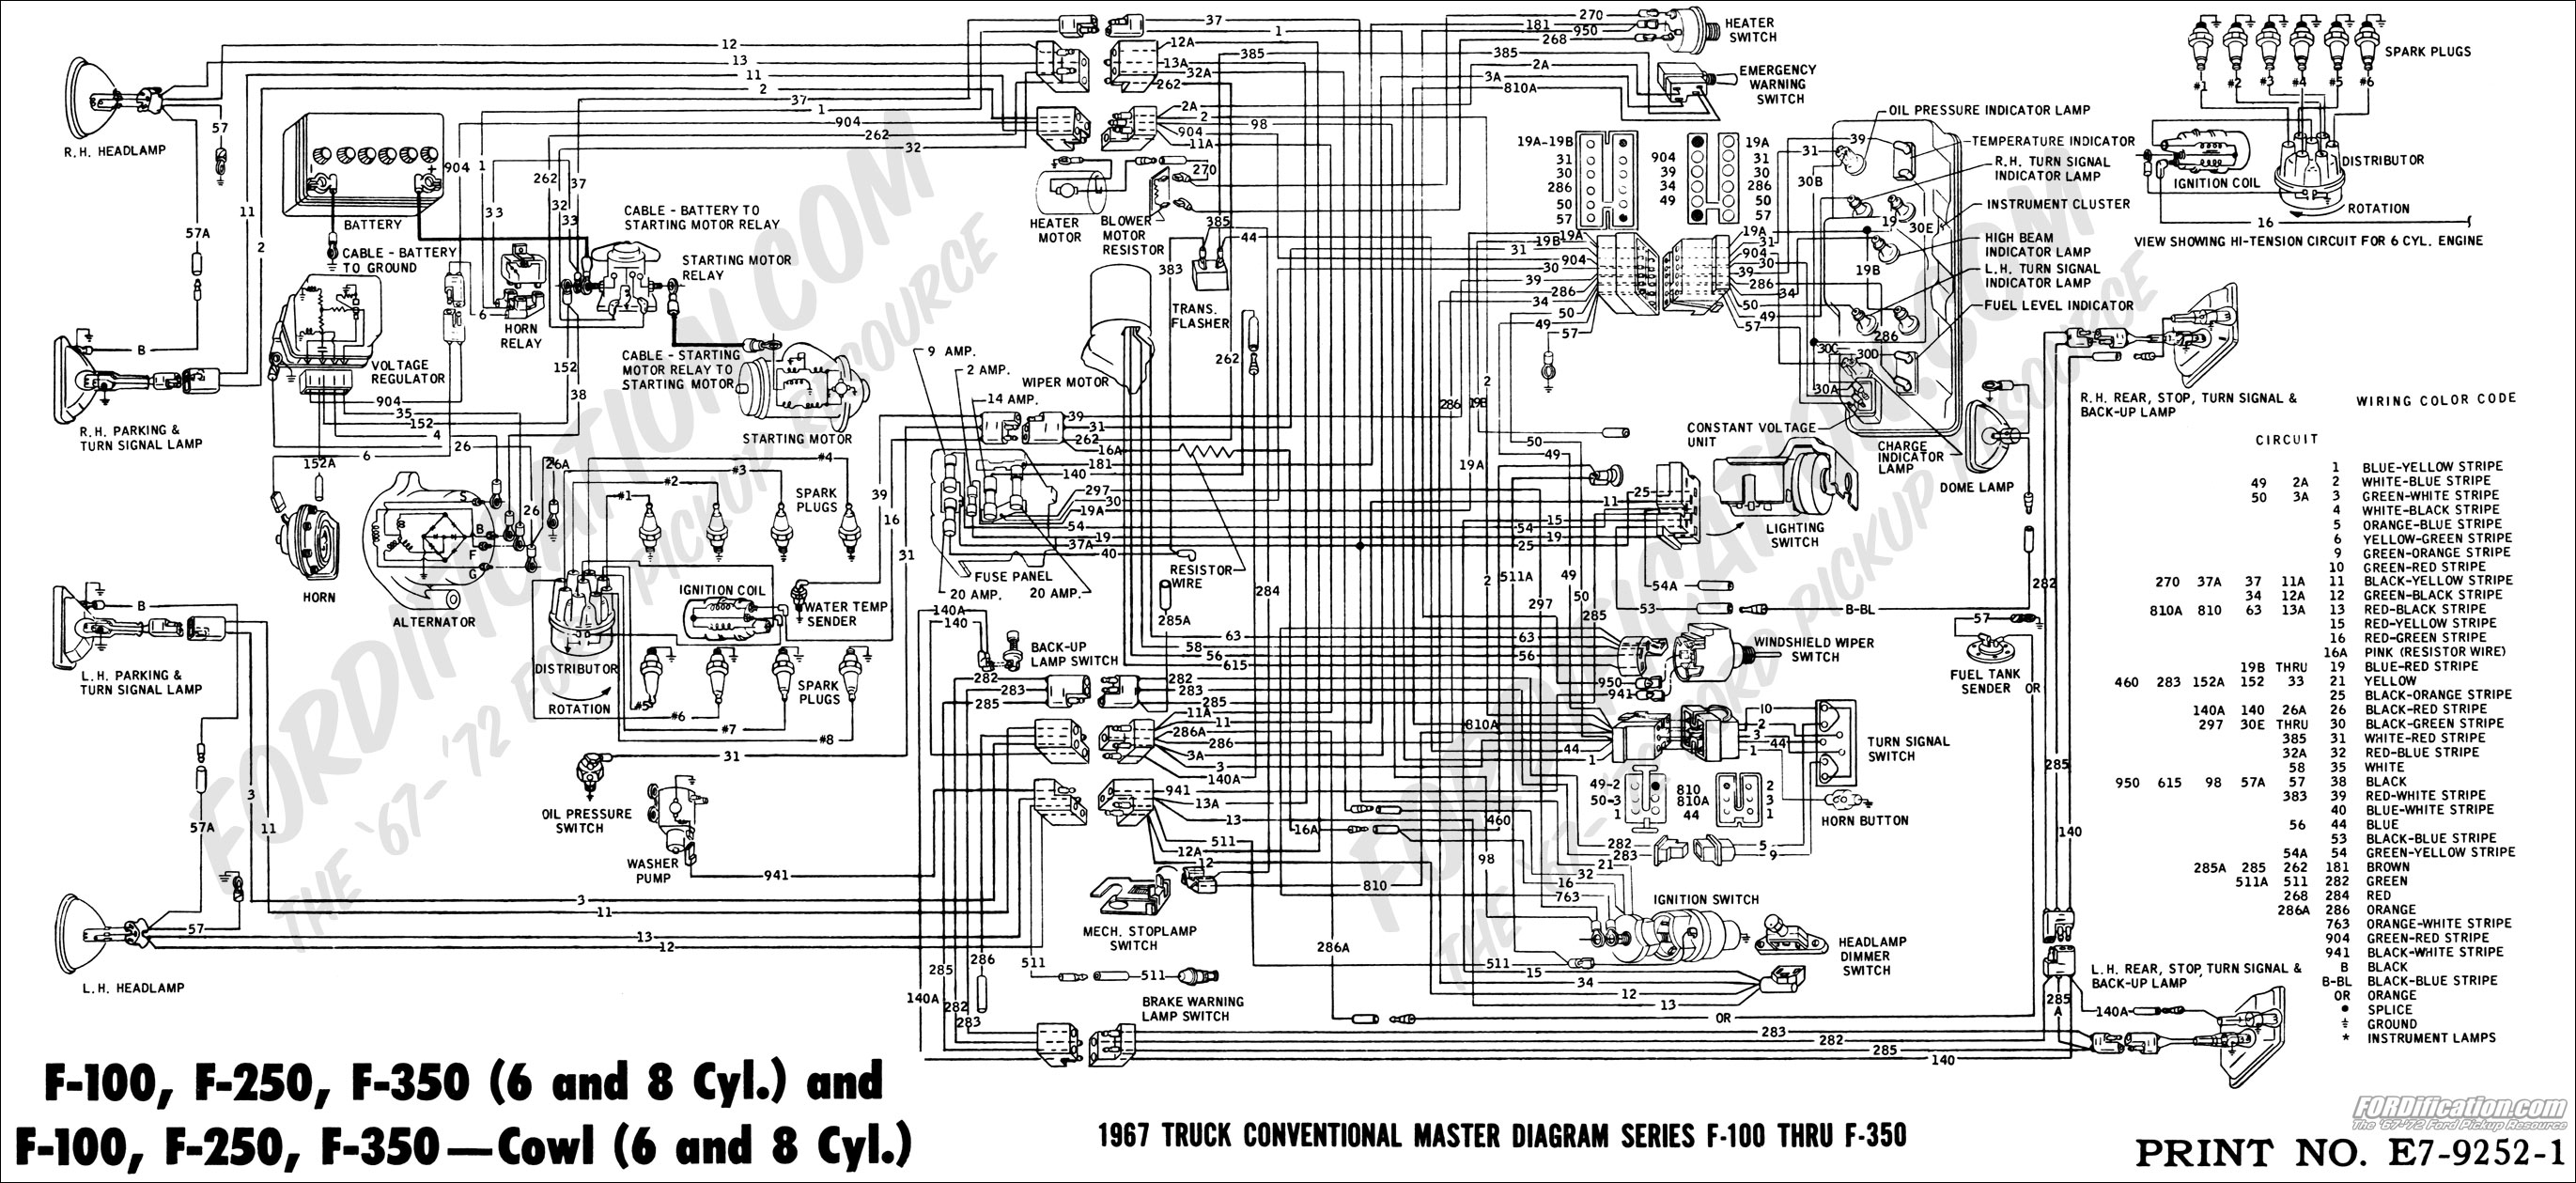 67masterdiagram ford truck technical drawings and schematics section h wiring ford wiring harness diagrams at crackthecode.co